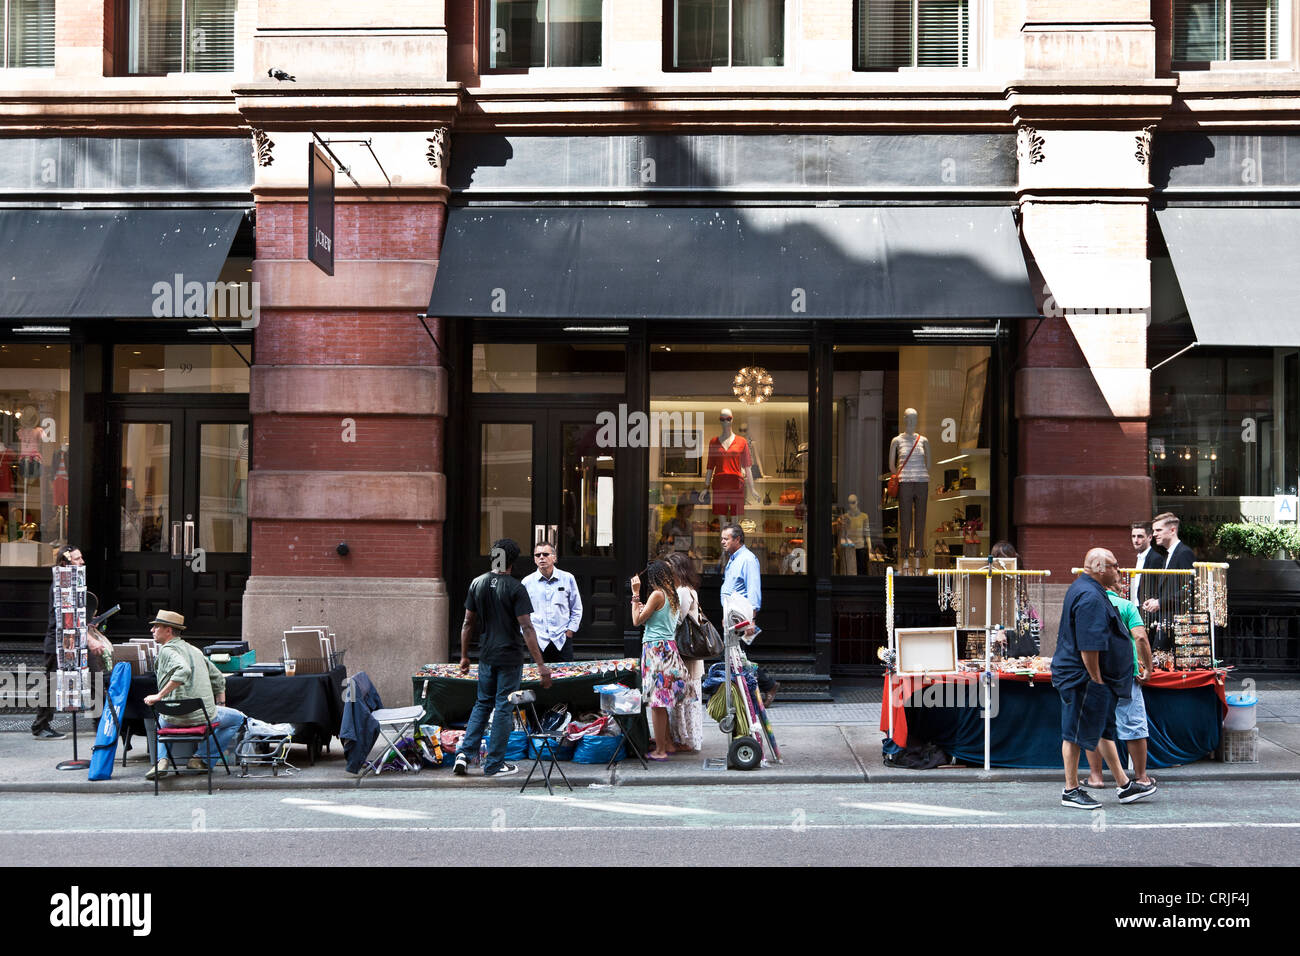 temporary sidewalk vendors provide a colorful shopping alternative to upscale boutiques behind them n Soho neighborhood - Stock Image